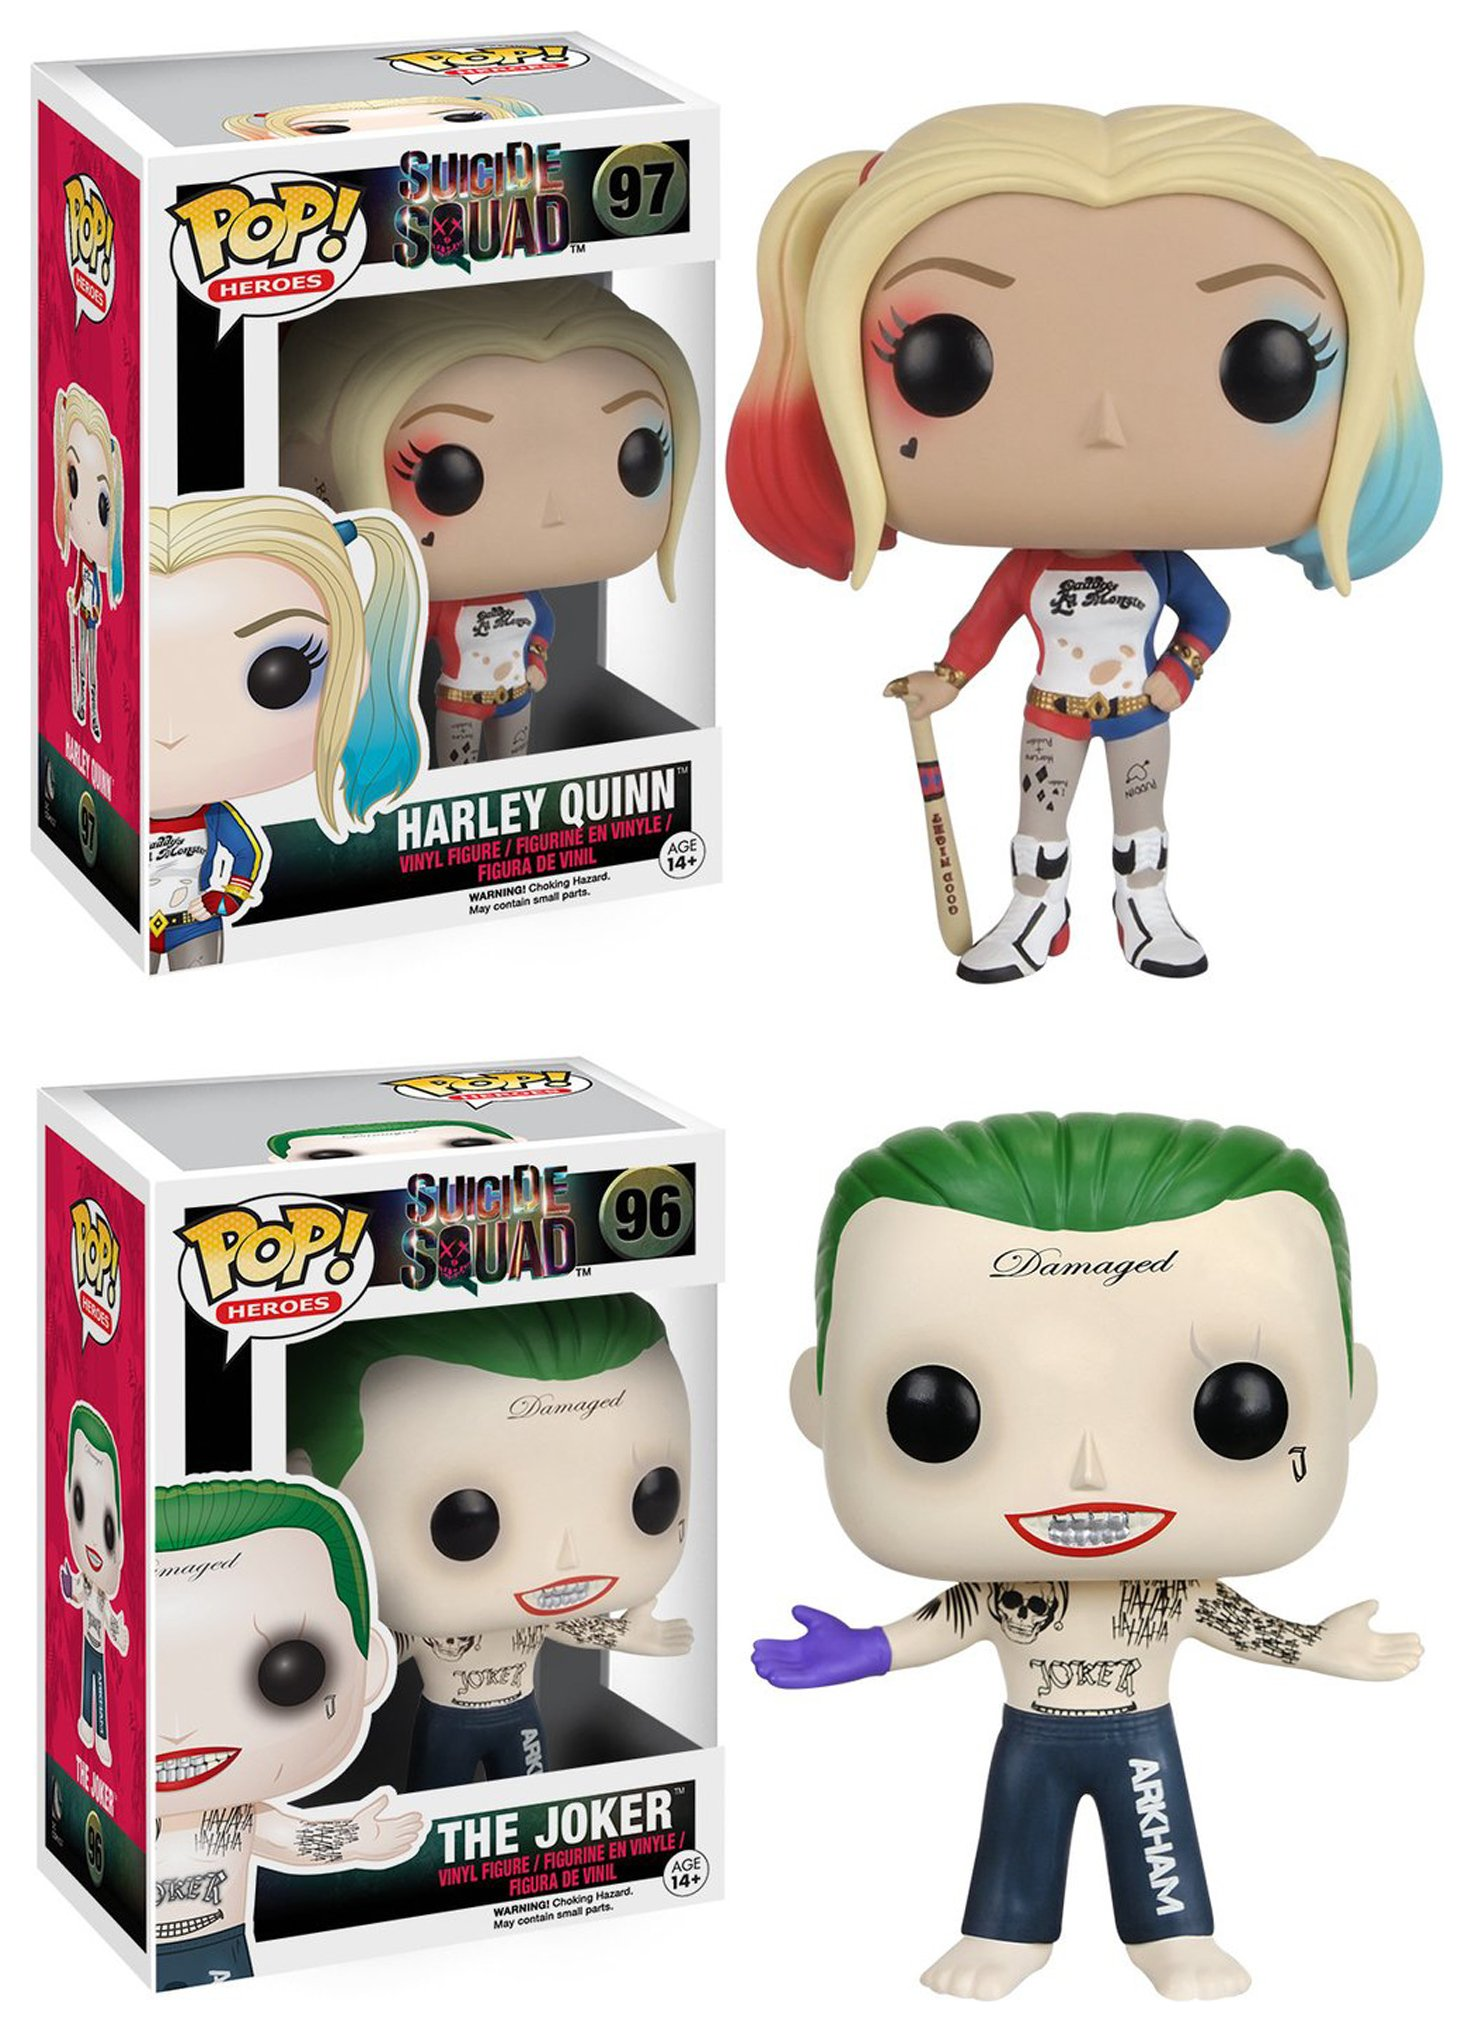 Image of Pop! Vinyl Harley Quinn and Joker Suicide Squad Bobble Head